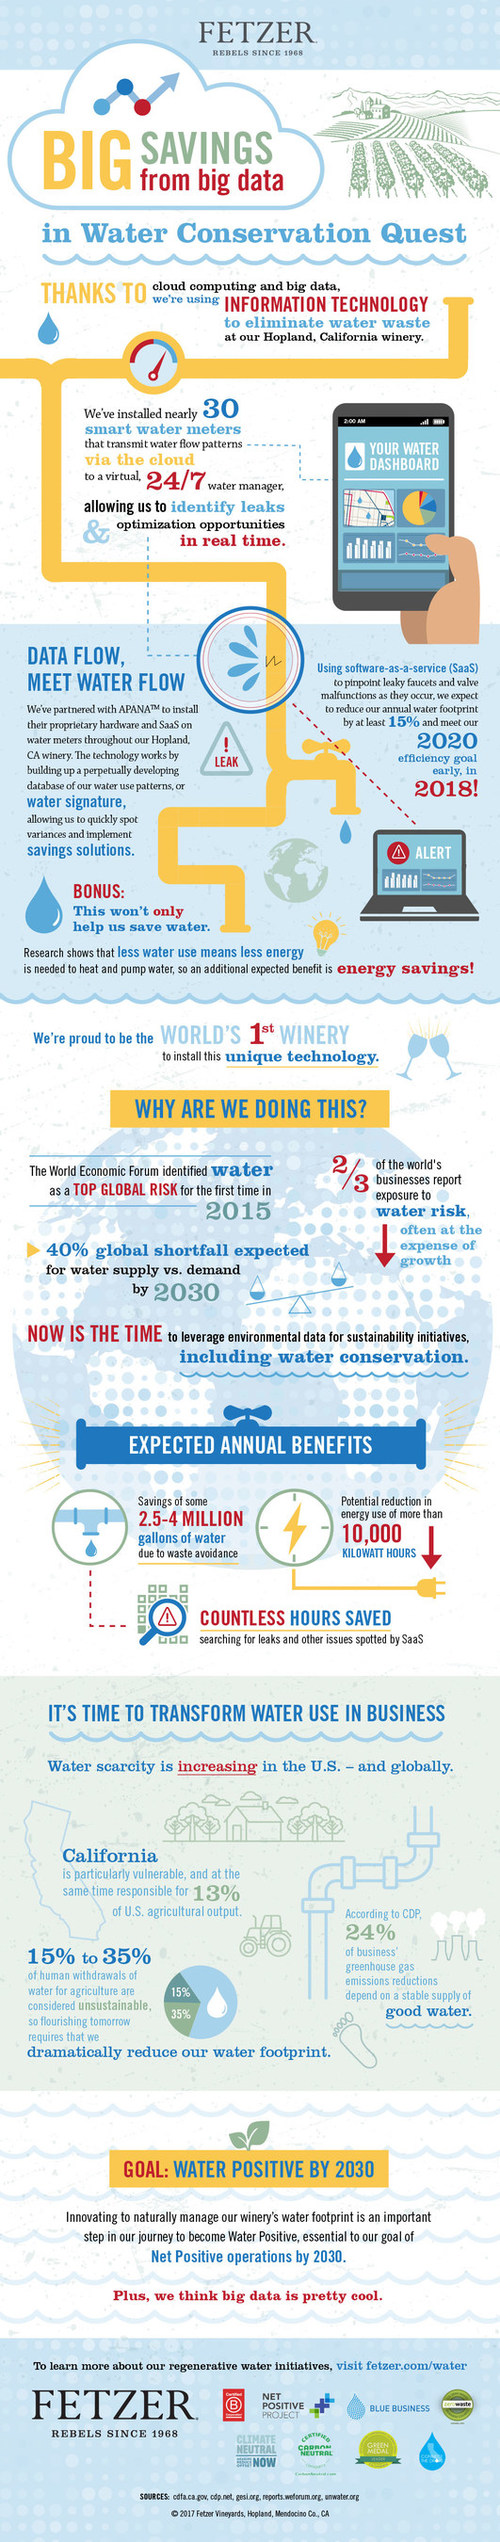 INFOGRAPHIC: Fetzer Vineyards Leverages Big Data for Big Water Savings at California Winery